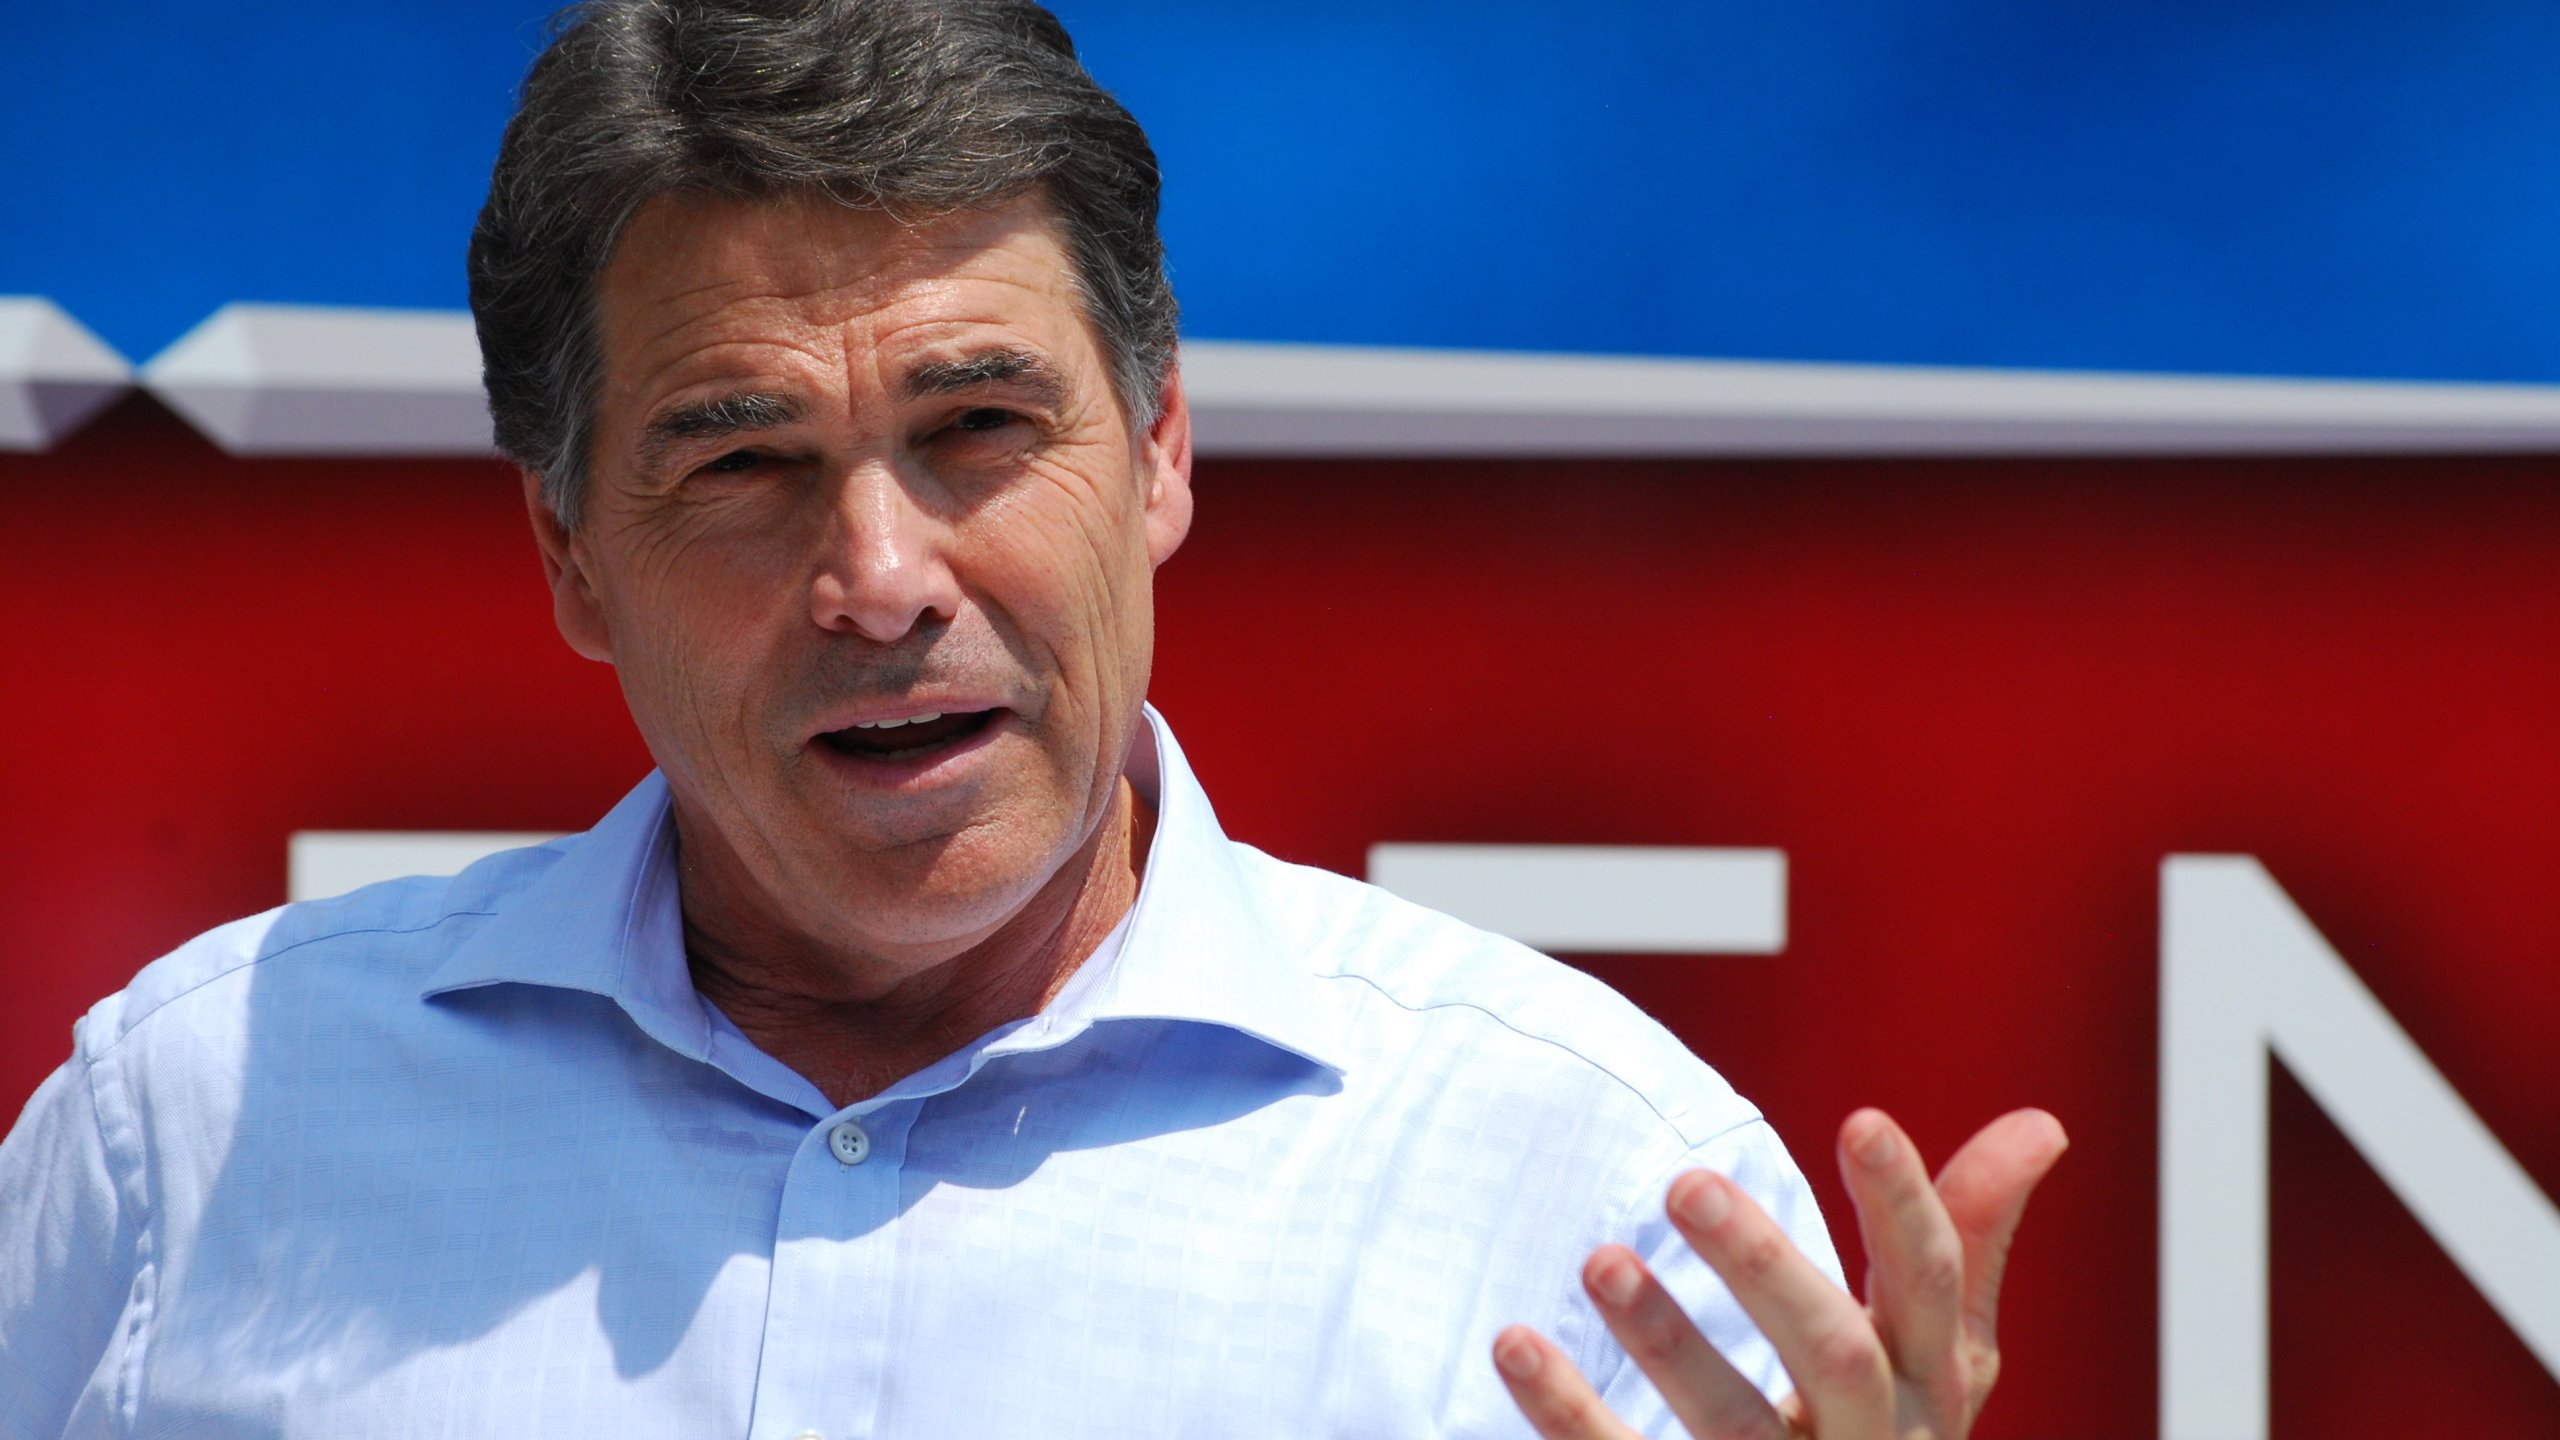 Perry Defends Stance on The Fed, Immigration